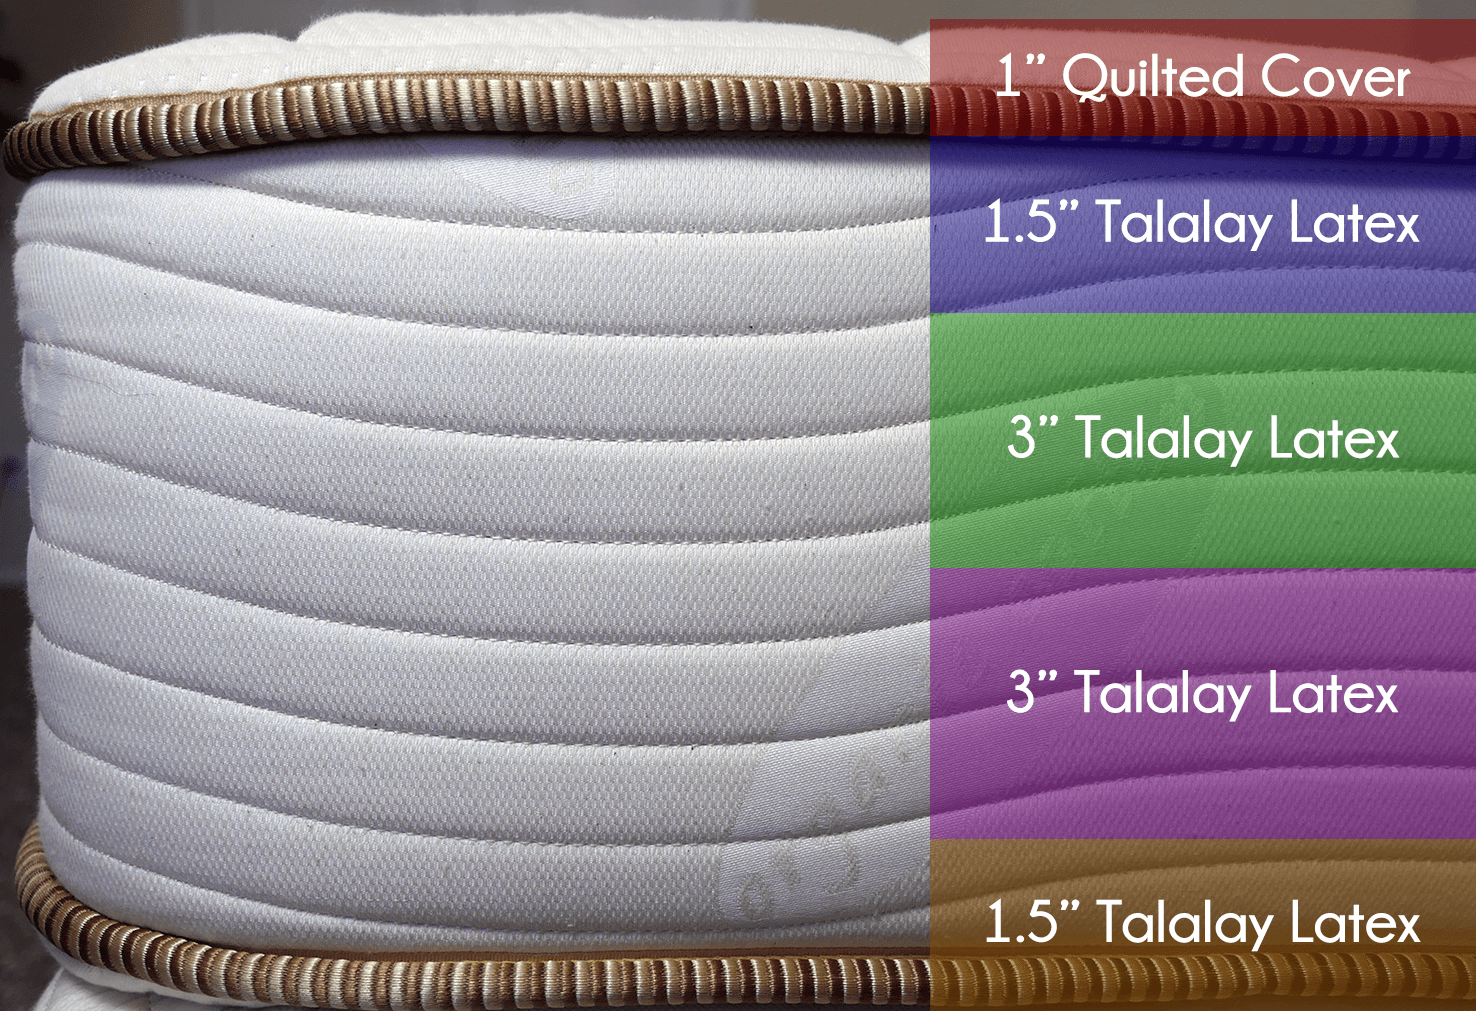 "ZenHaven layers (top to bottom) - 1"" quilted cover, 1.5"" Talalay latex, 3"" Talalay latex, 3"" Talalay latex, 1.5"" Talalay latex"